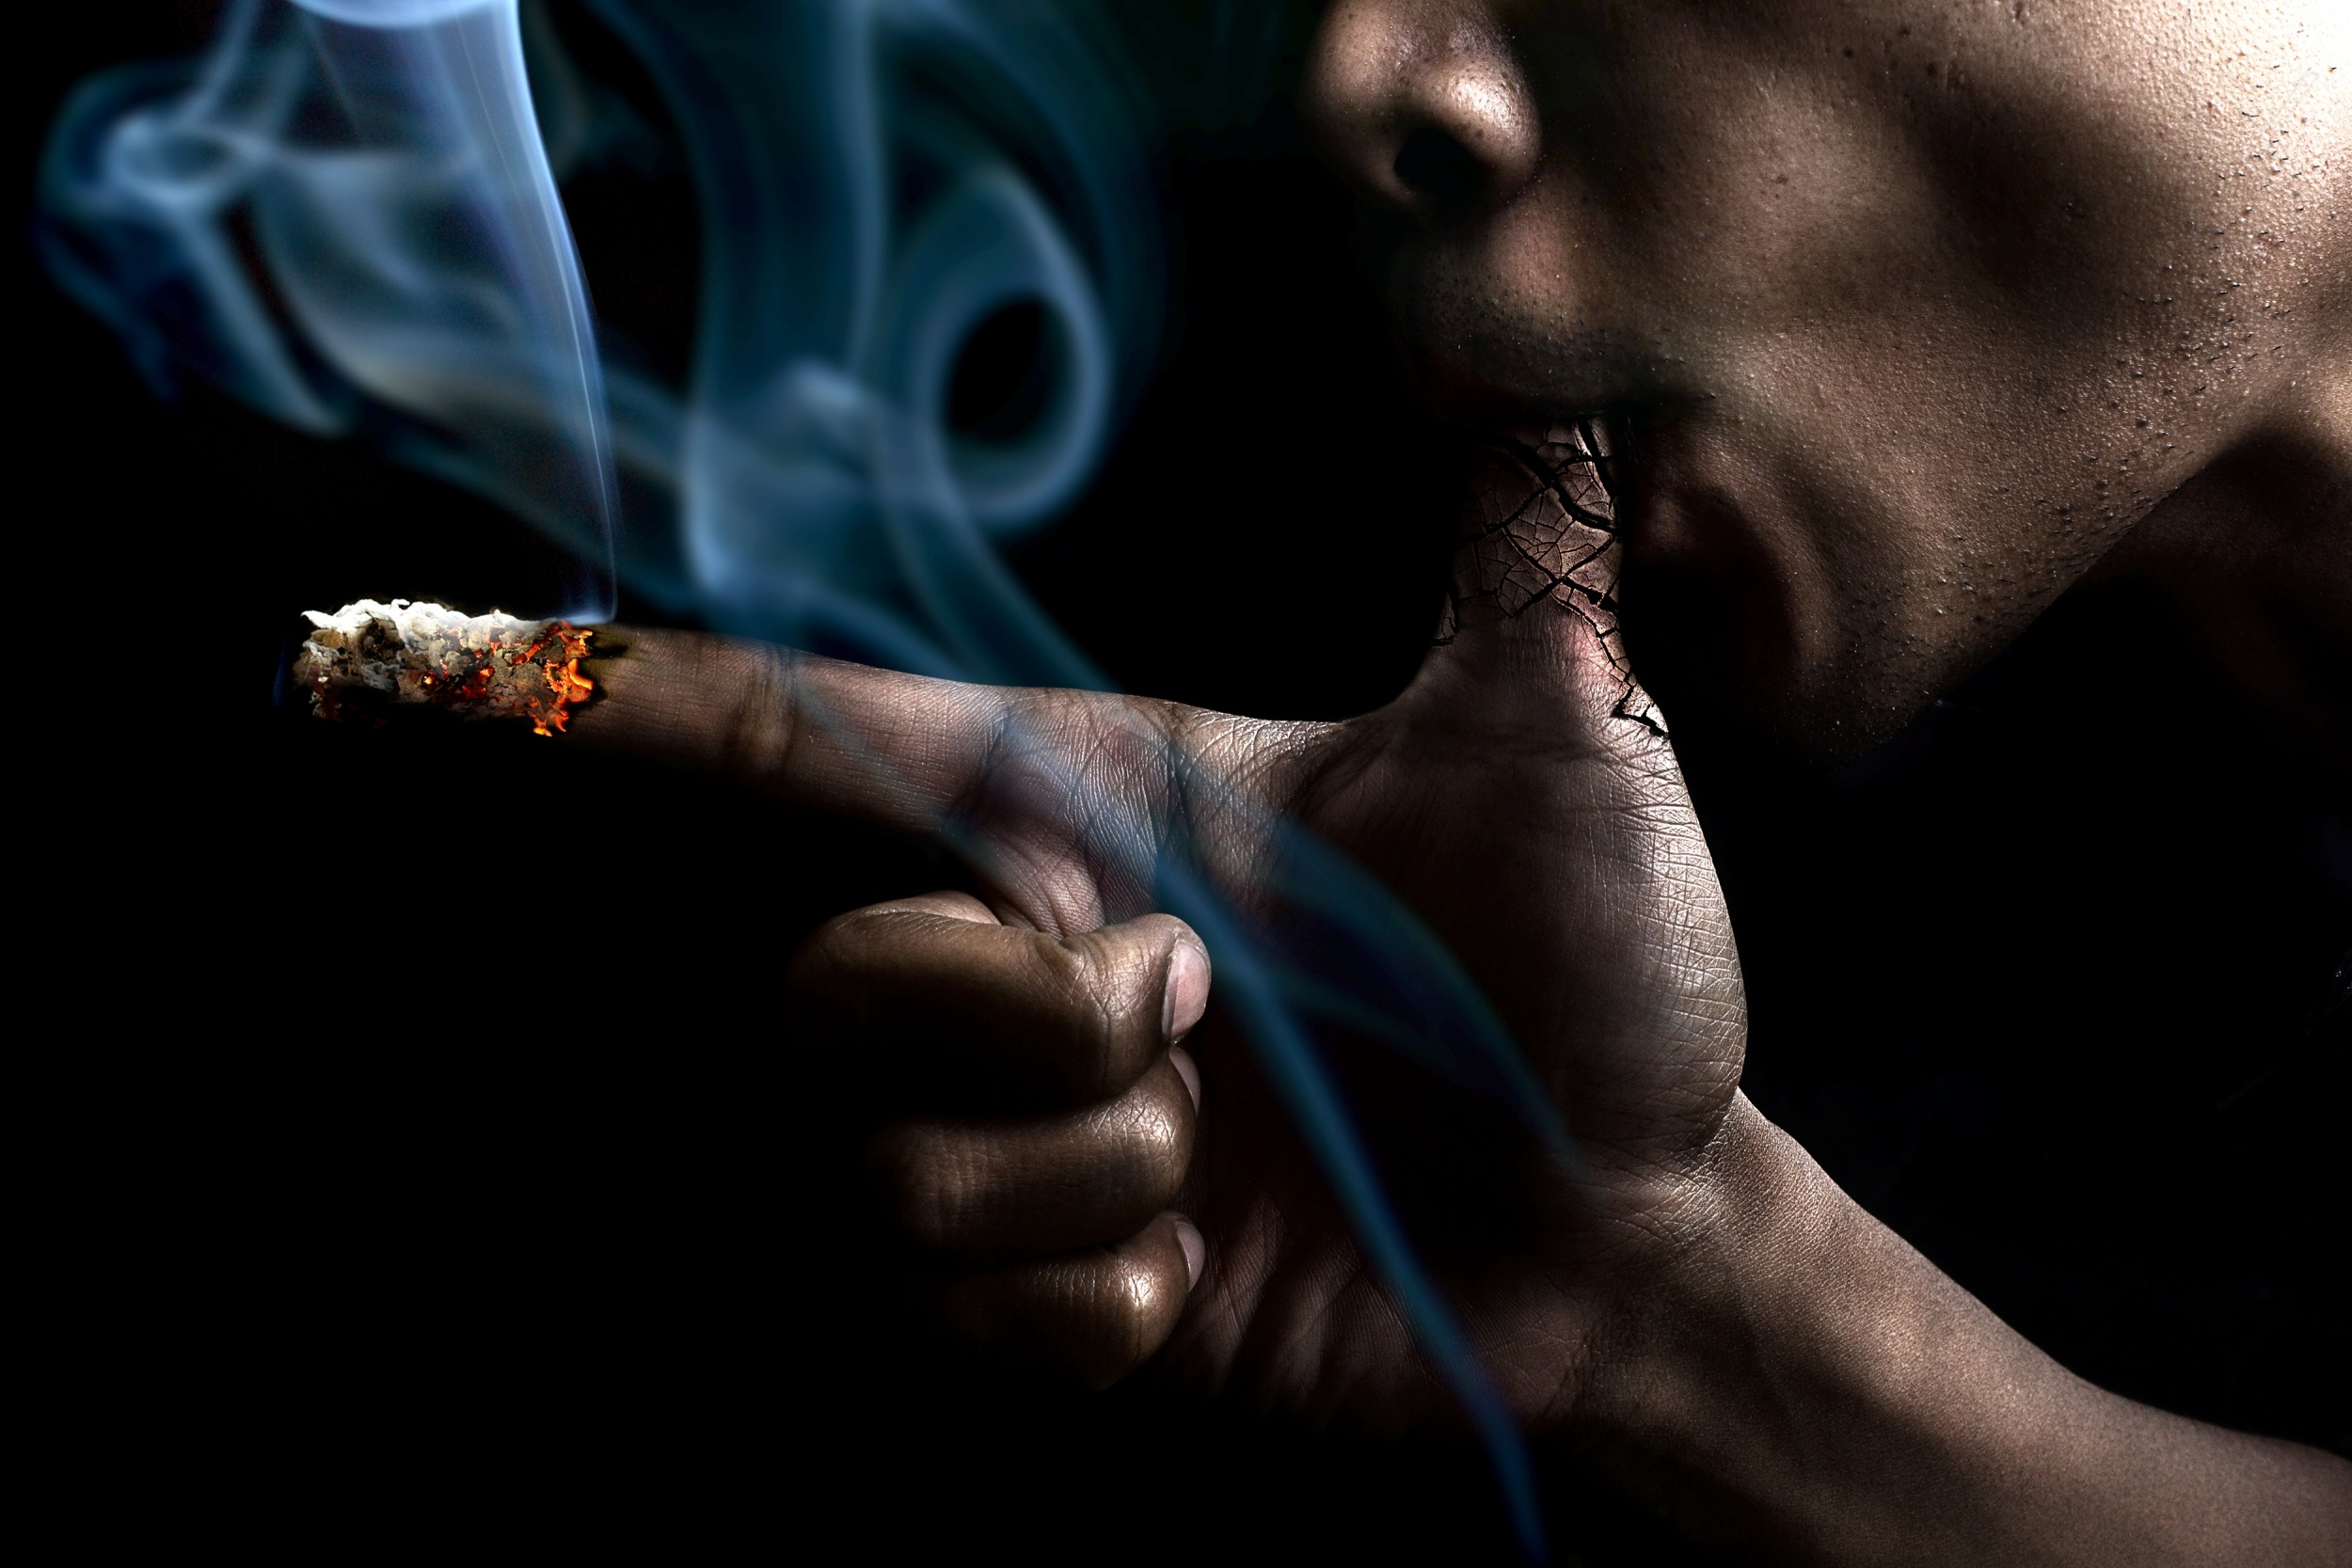 smoking wallpaper .com